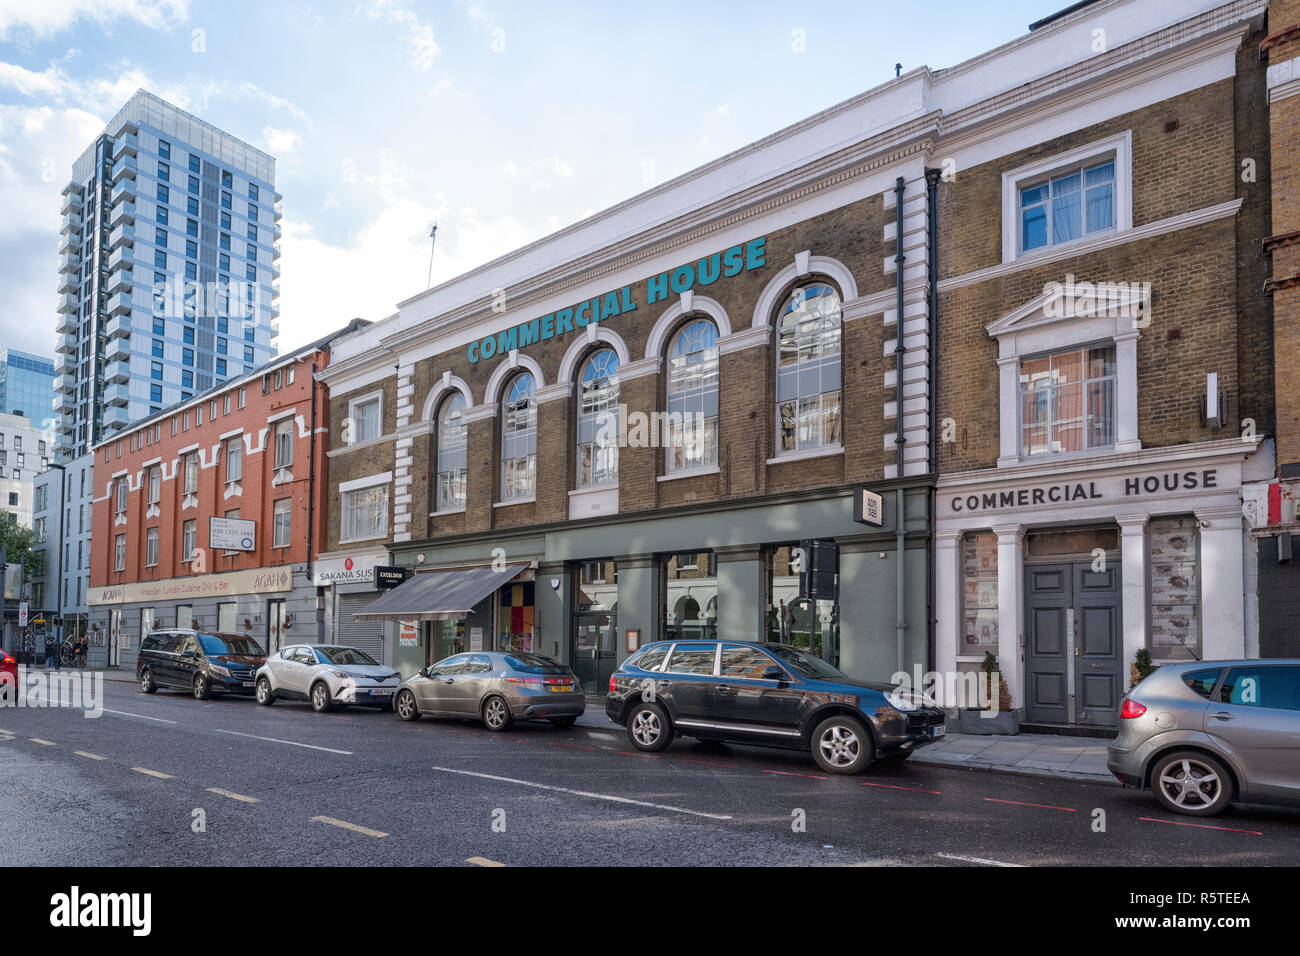 Commercial House, on Commercial Street, London E1, built in 1841 as a Jewish Infants School but converted into commerical premises at a later date. - Stock Image